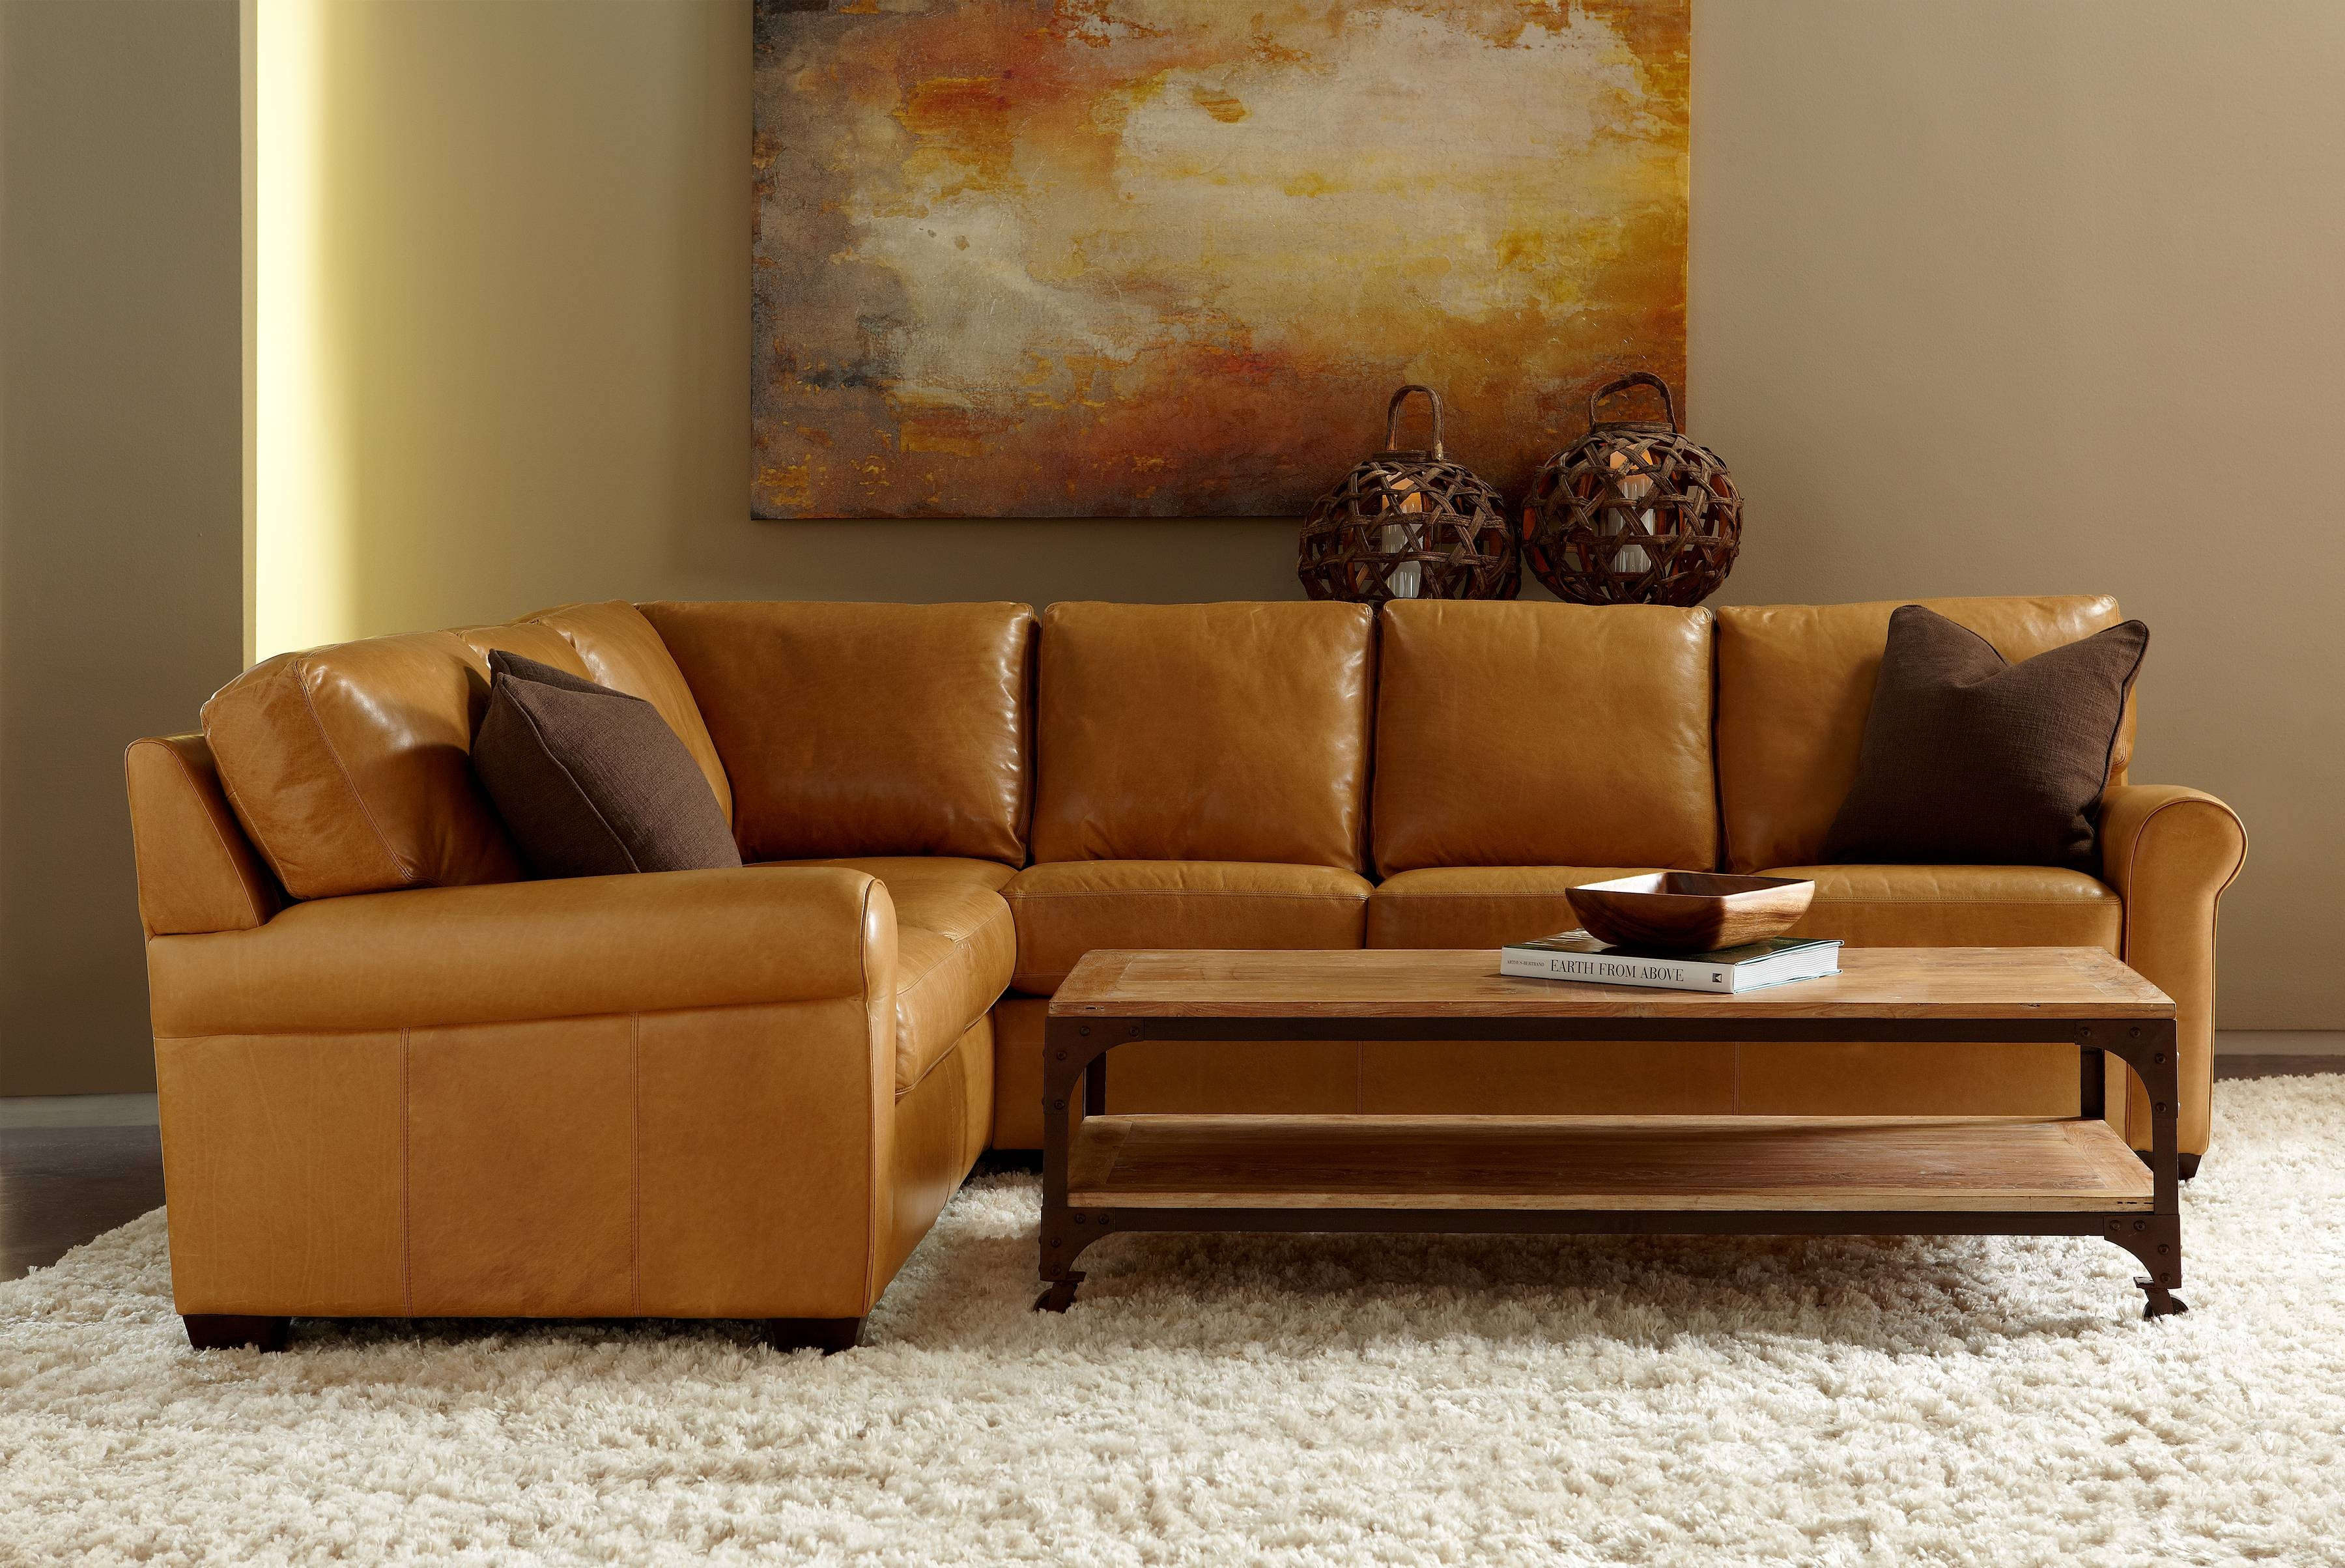 L Shaped Sectional. Remarkable L Shaped Sectional Sofa Covers 43 with Craftsman Sectional Sofa (Image 23 of 30)